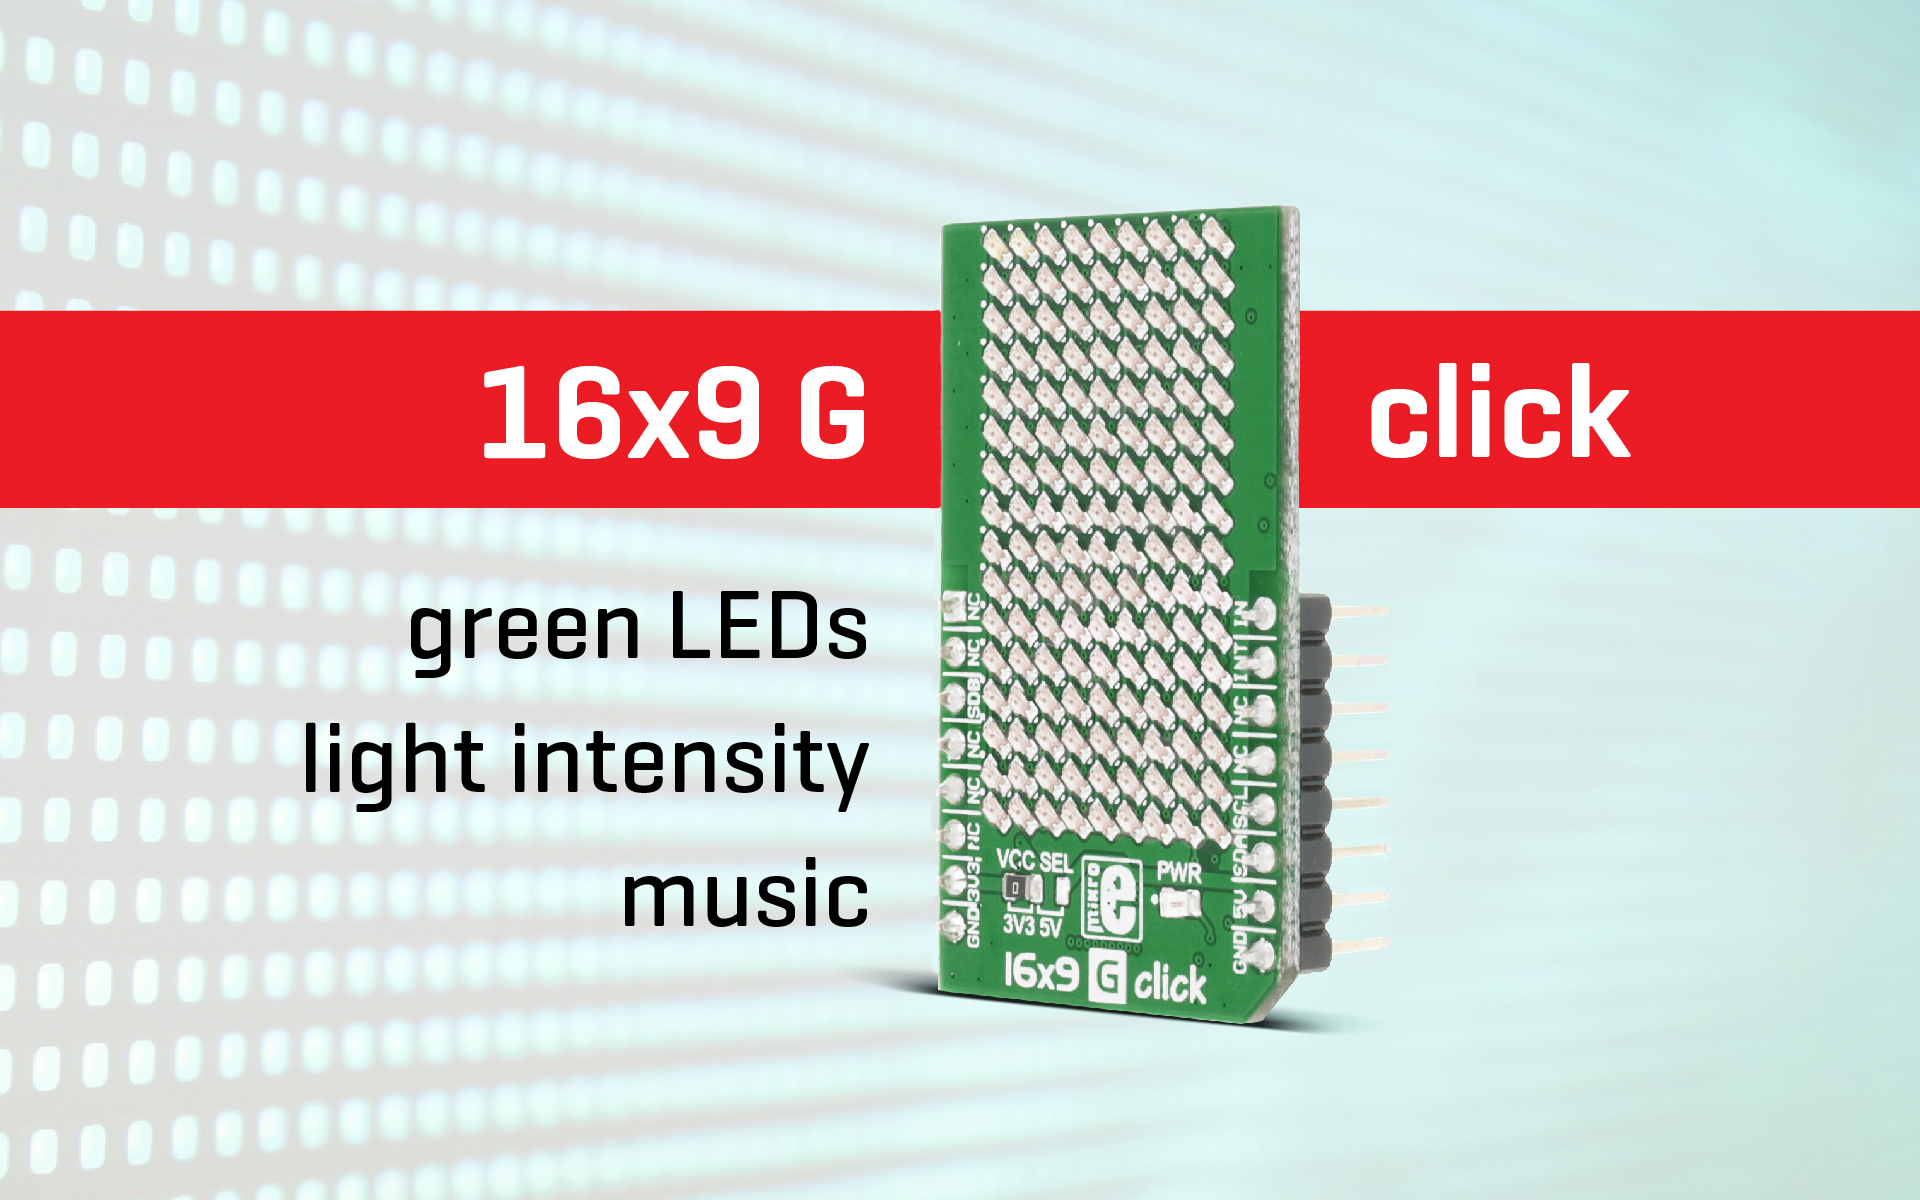 16x9 G click – green LEDs, light intensity and music